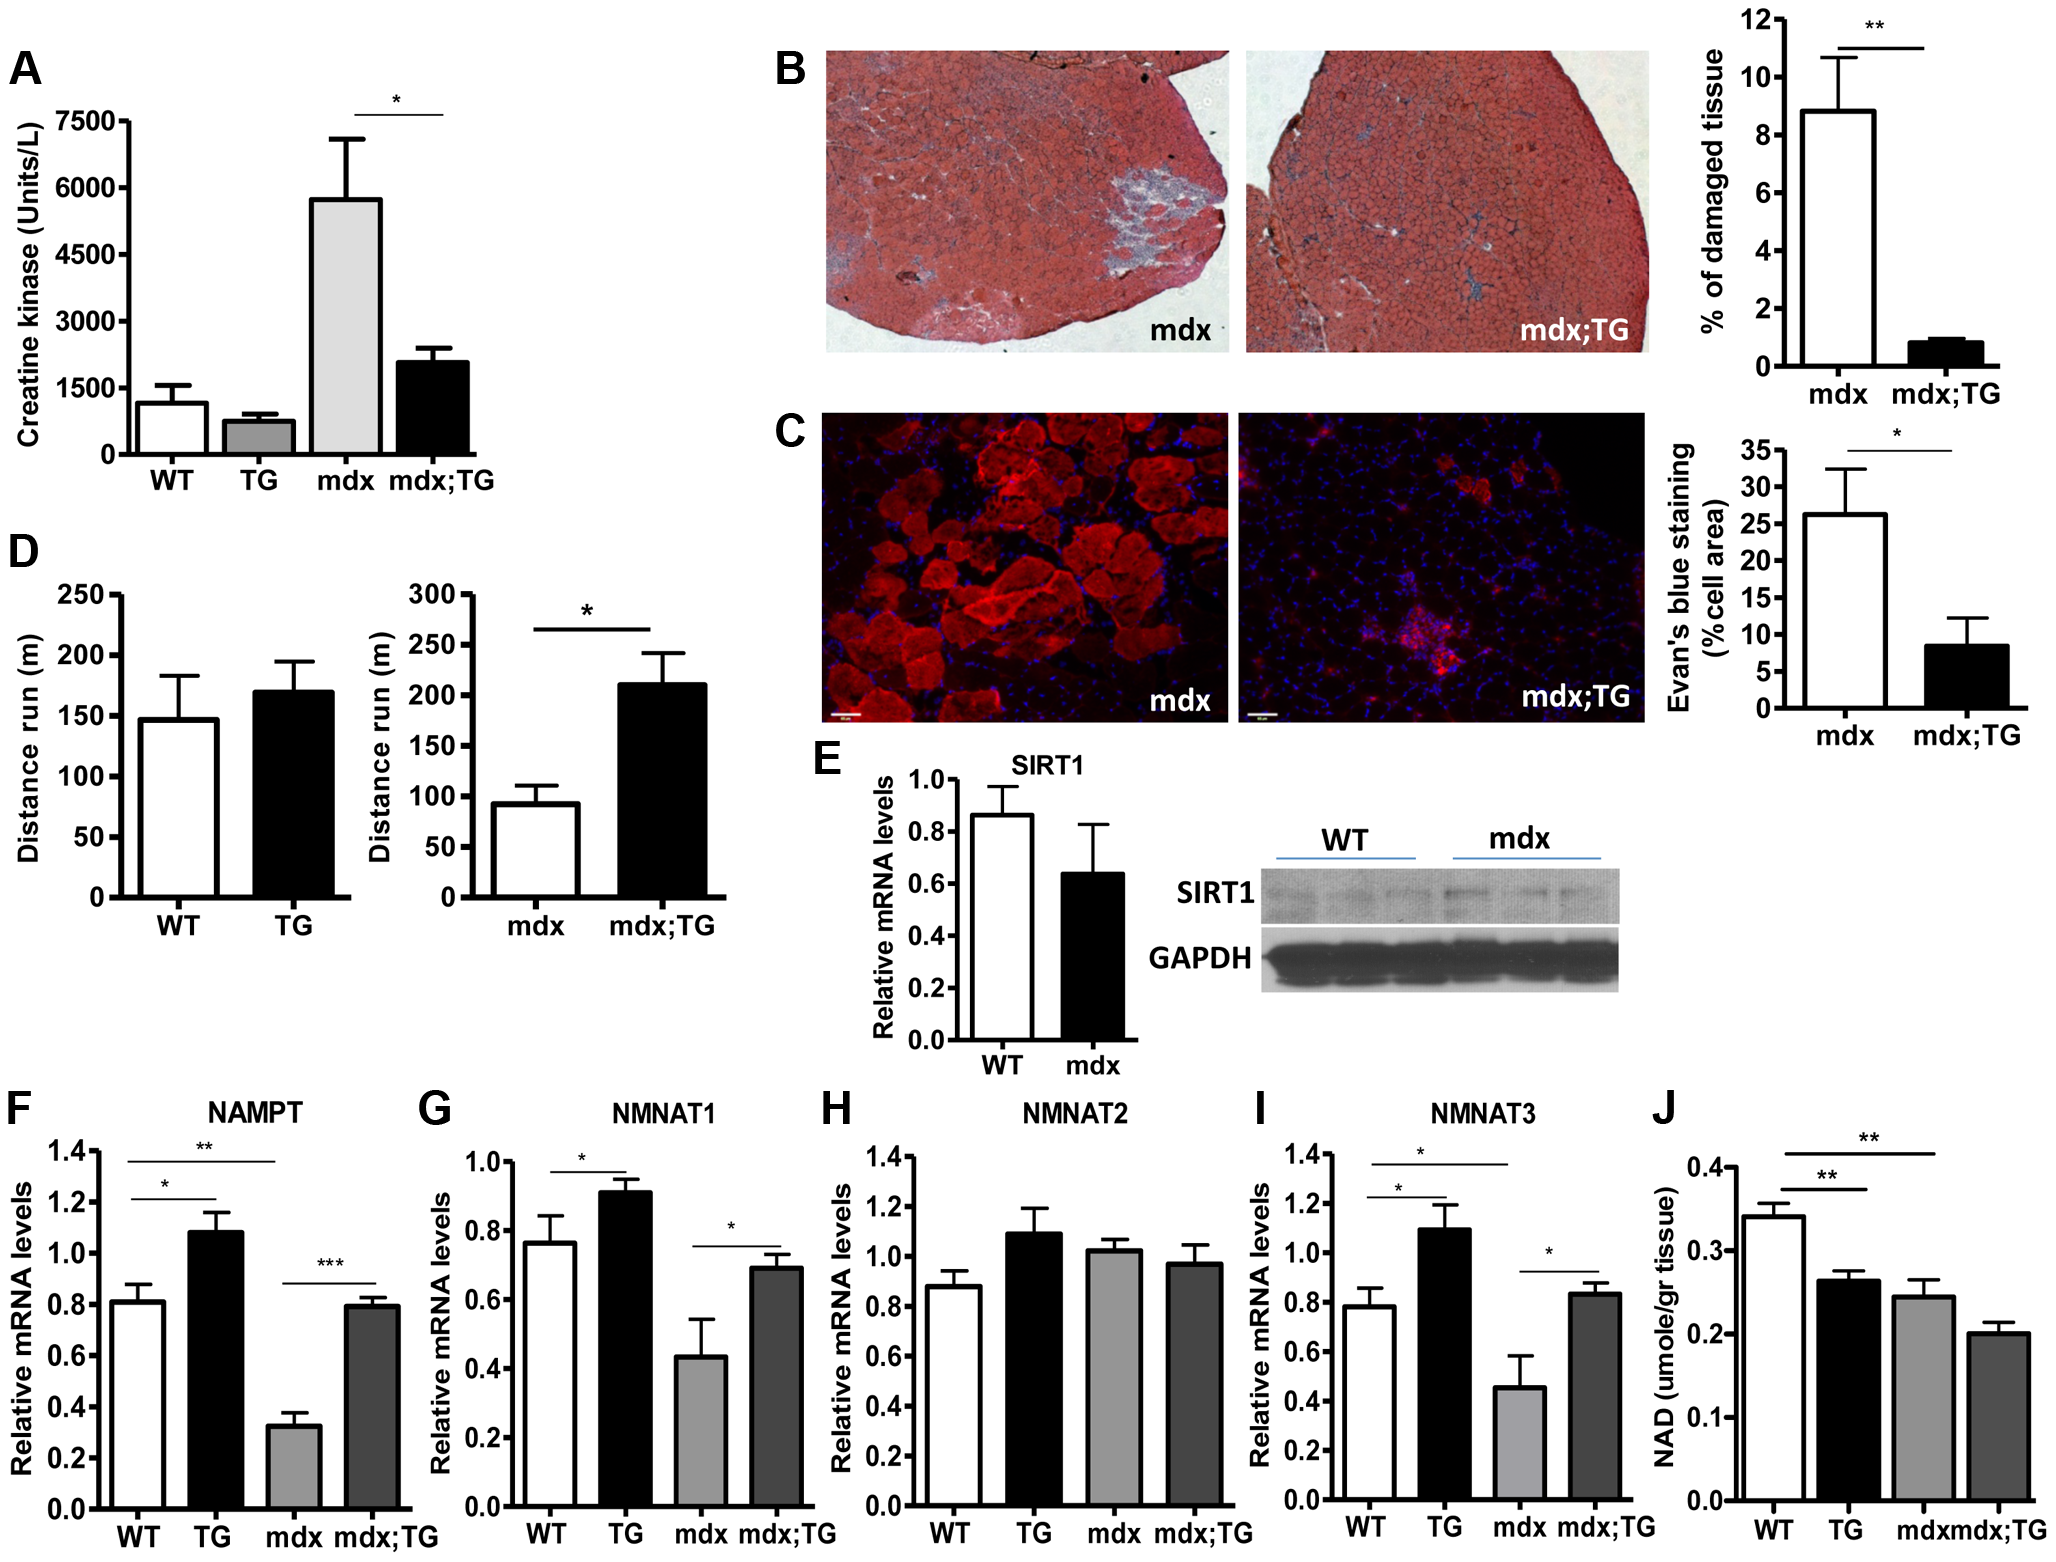 SIRT1 overexpression in skeletal muscle alleviates the muscular dystrophic phenotype of mdx mouse.